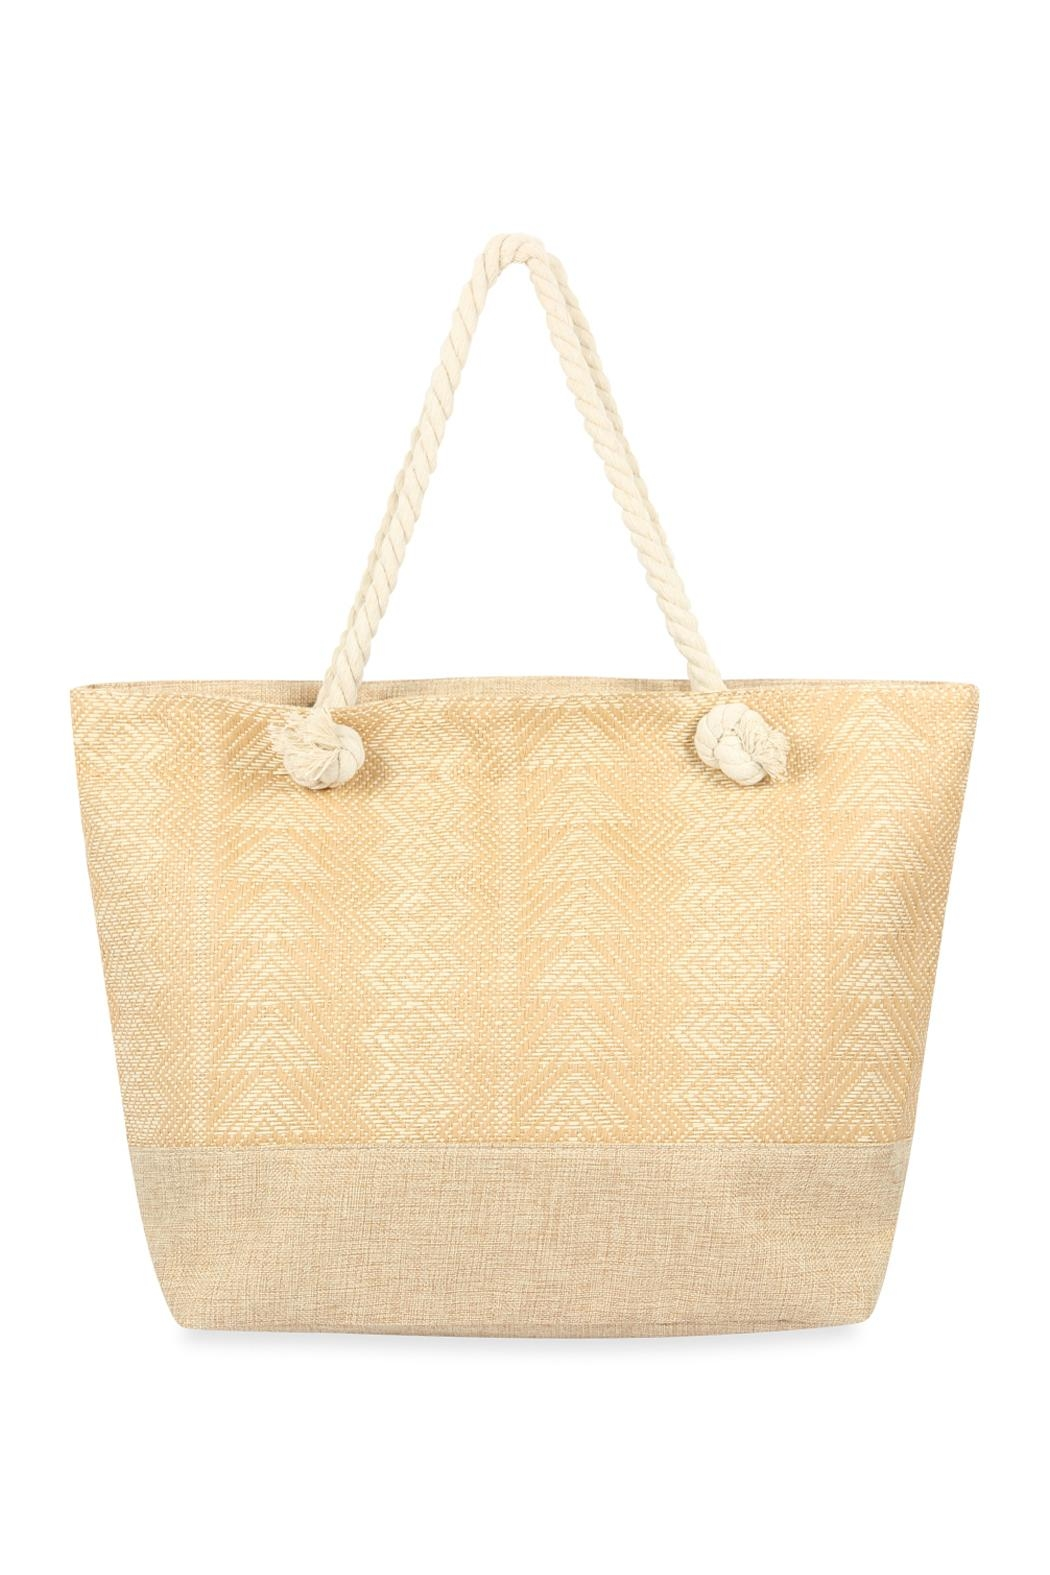 Riah Fashion Laced Pattern Weaved Tote Bag - Front Cropped Image